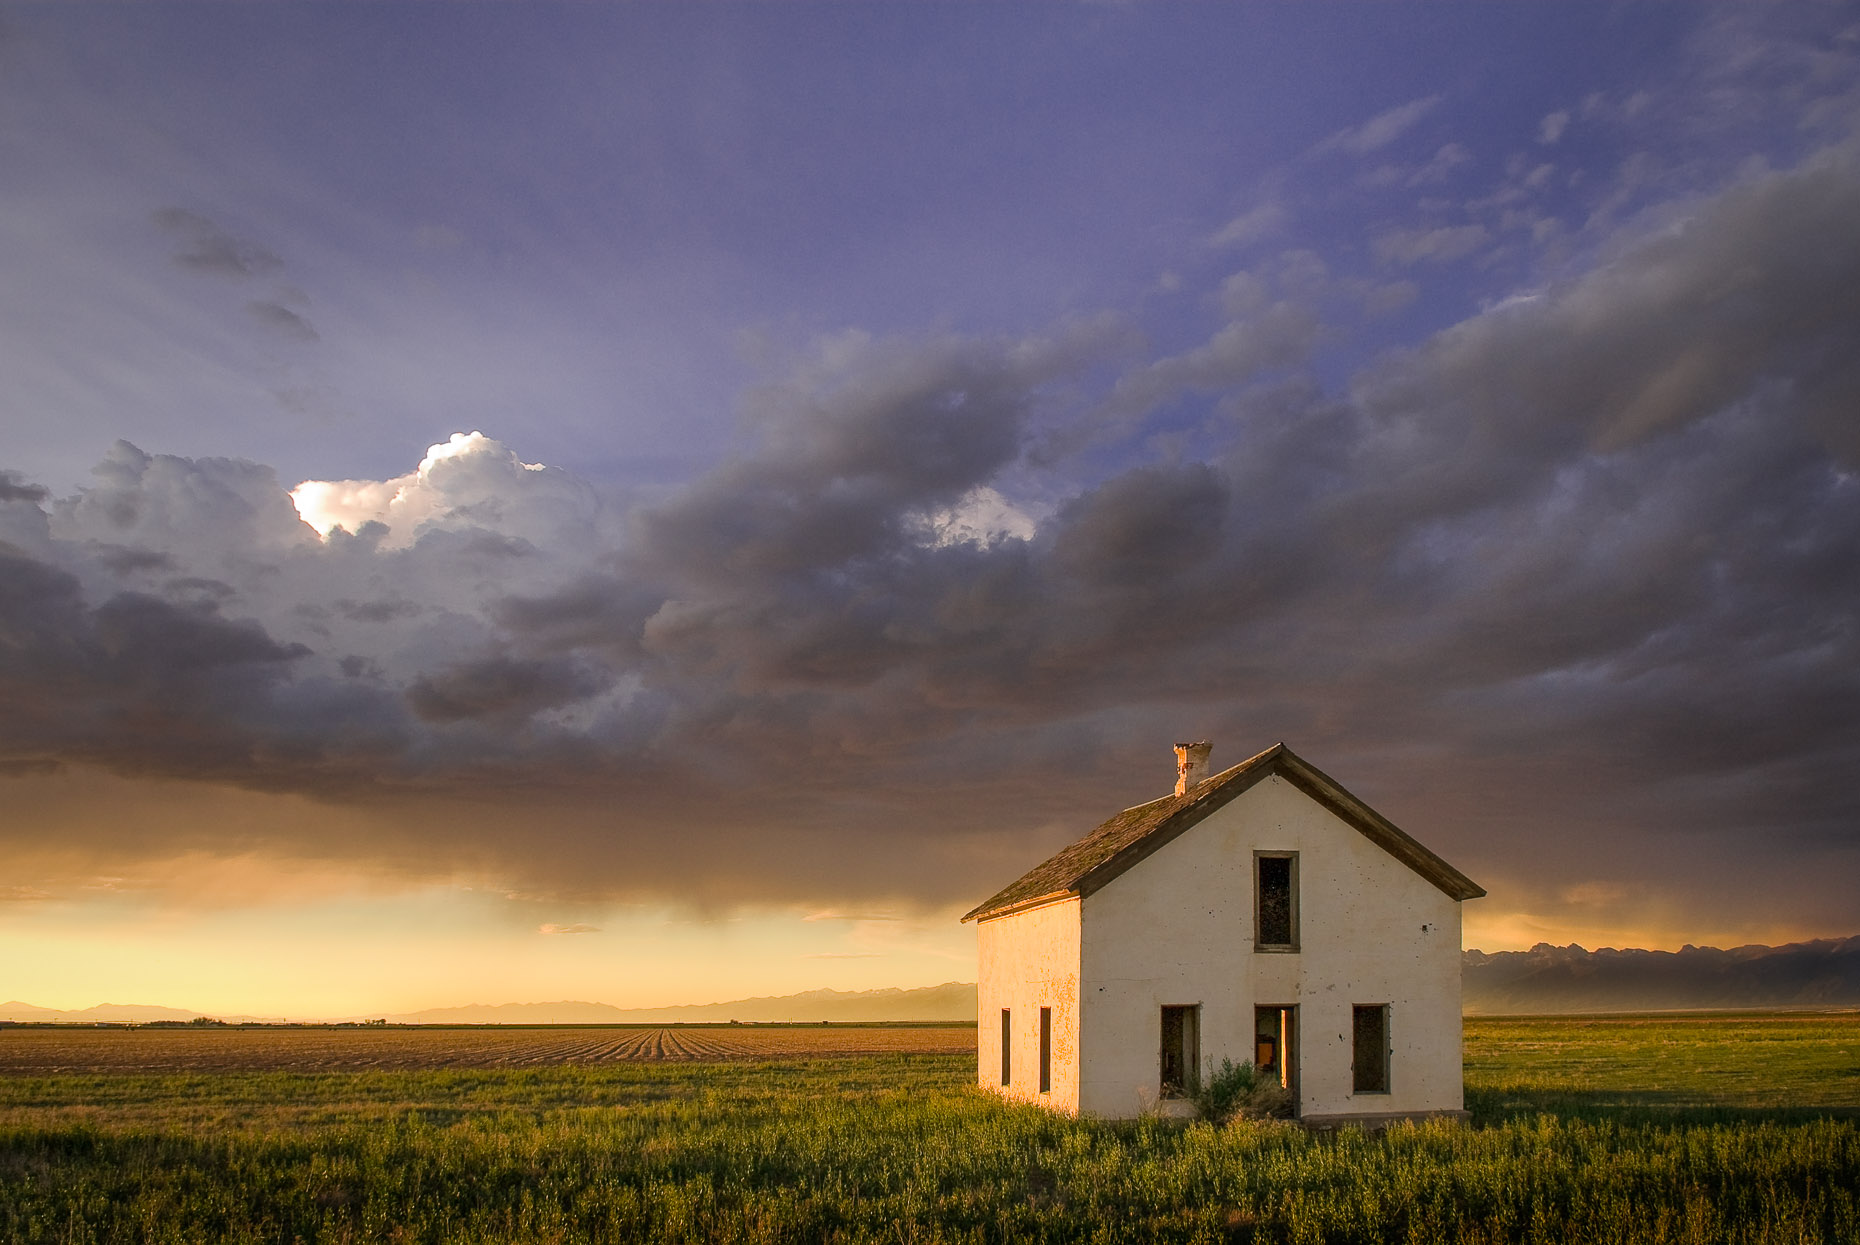 Abandoned small farm house in green field at dramatic sunset and rain storm.